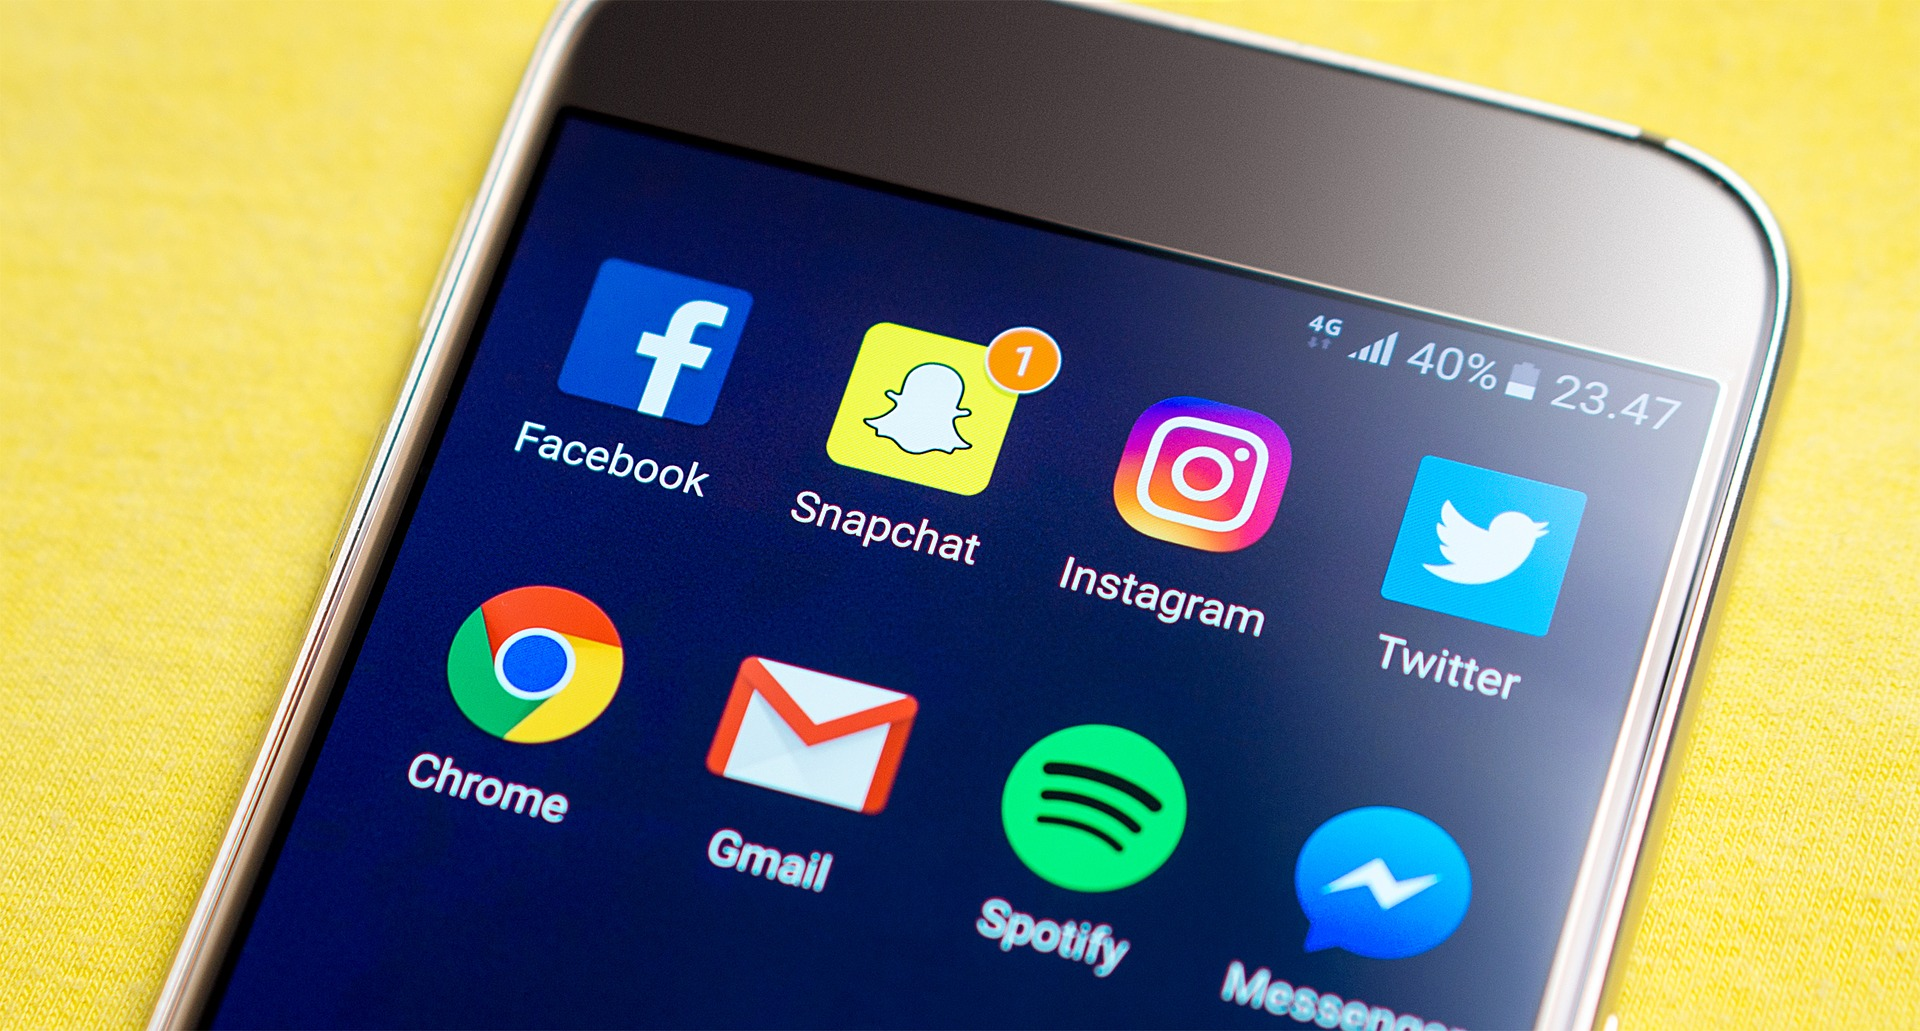 Mobile phone with social media apps icon, Snapchat has one notification